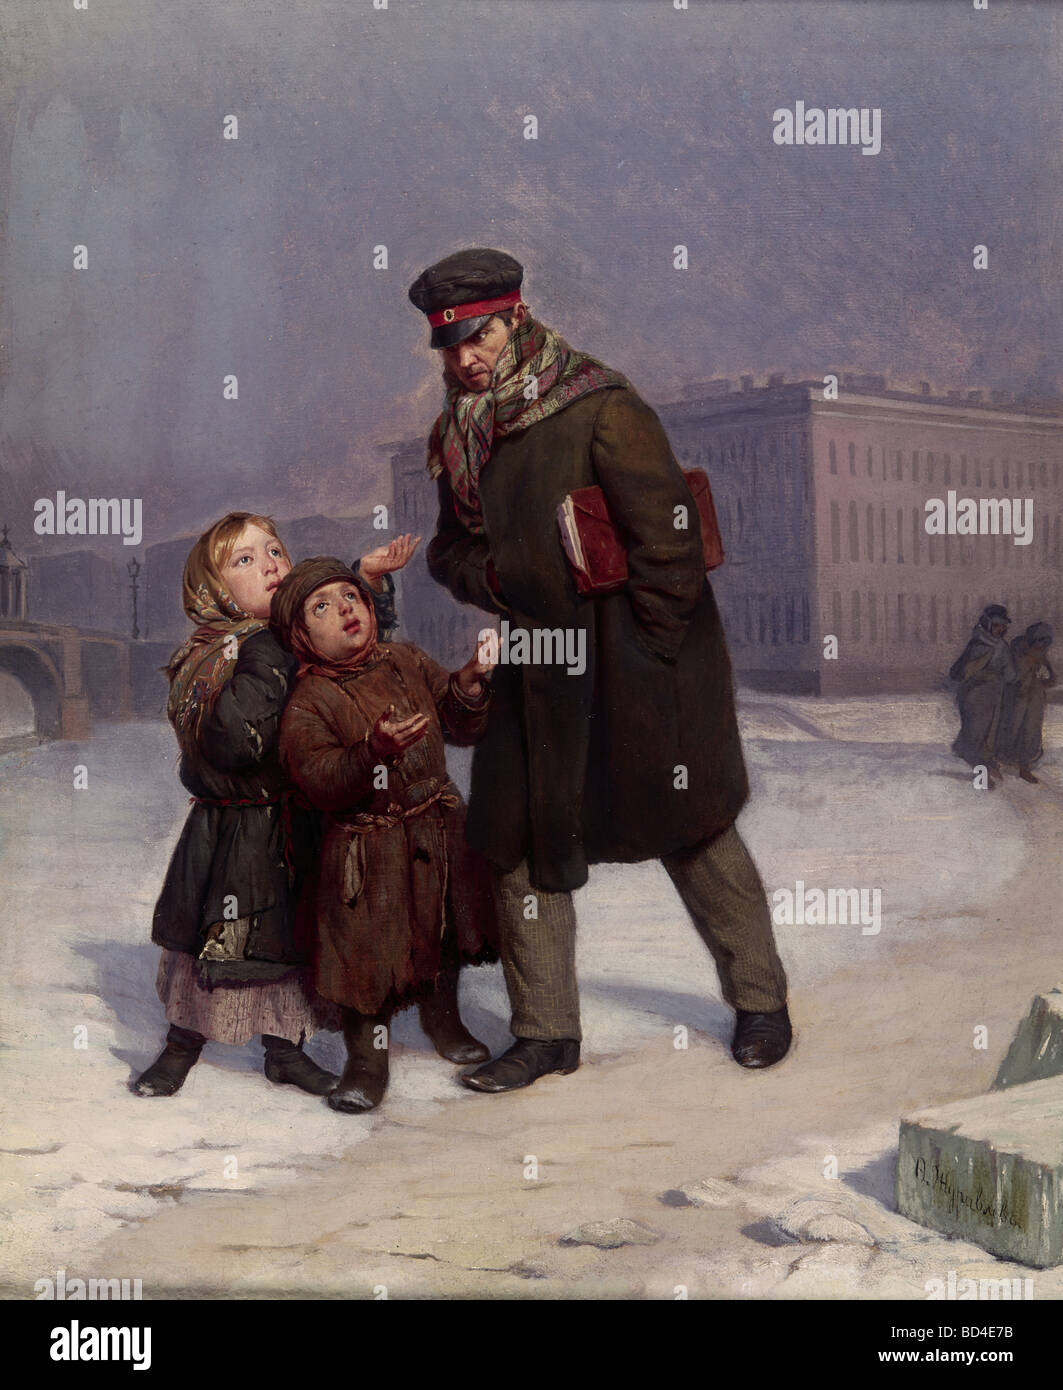 fine arts, Shuravlyov, Firs (1836 - 1901), painting, 'Begging Children', Russian Museum, Saint Petersburg, - Stock Image